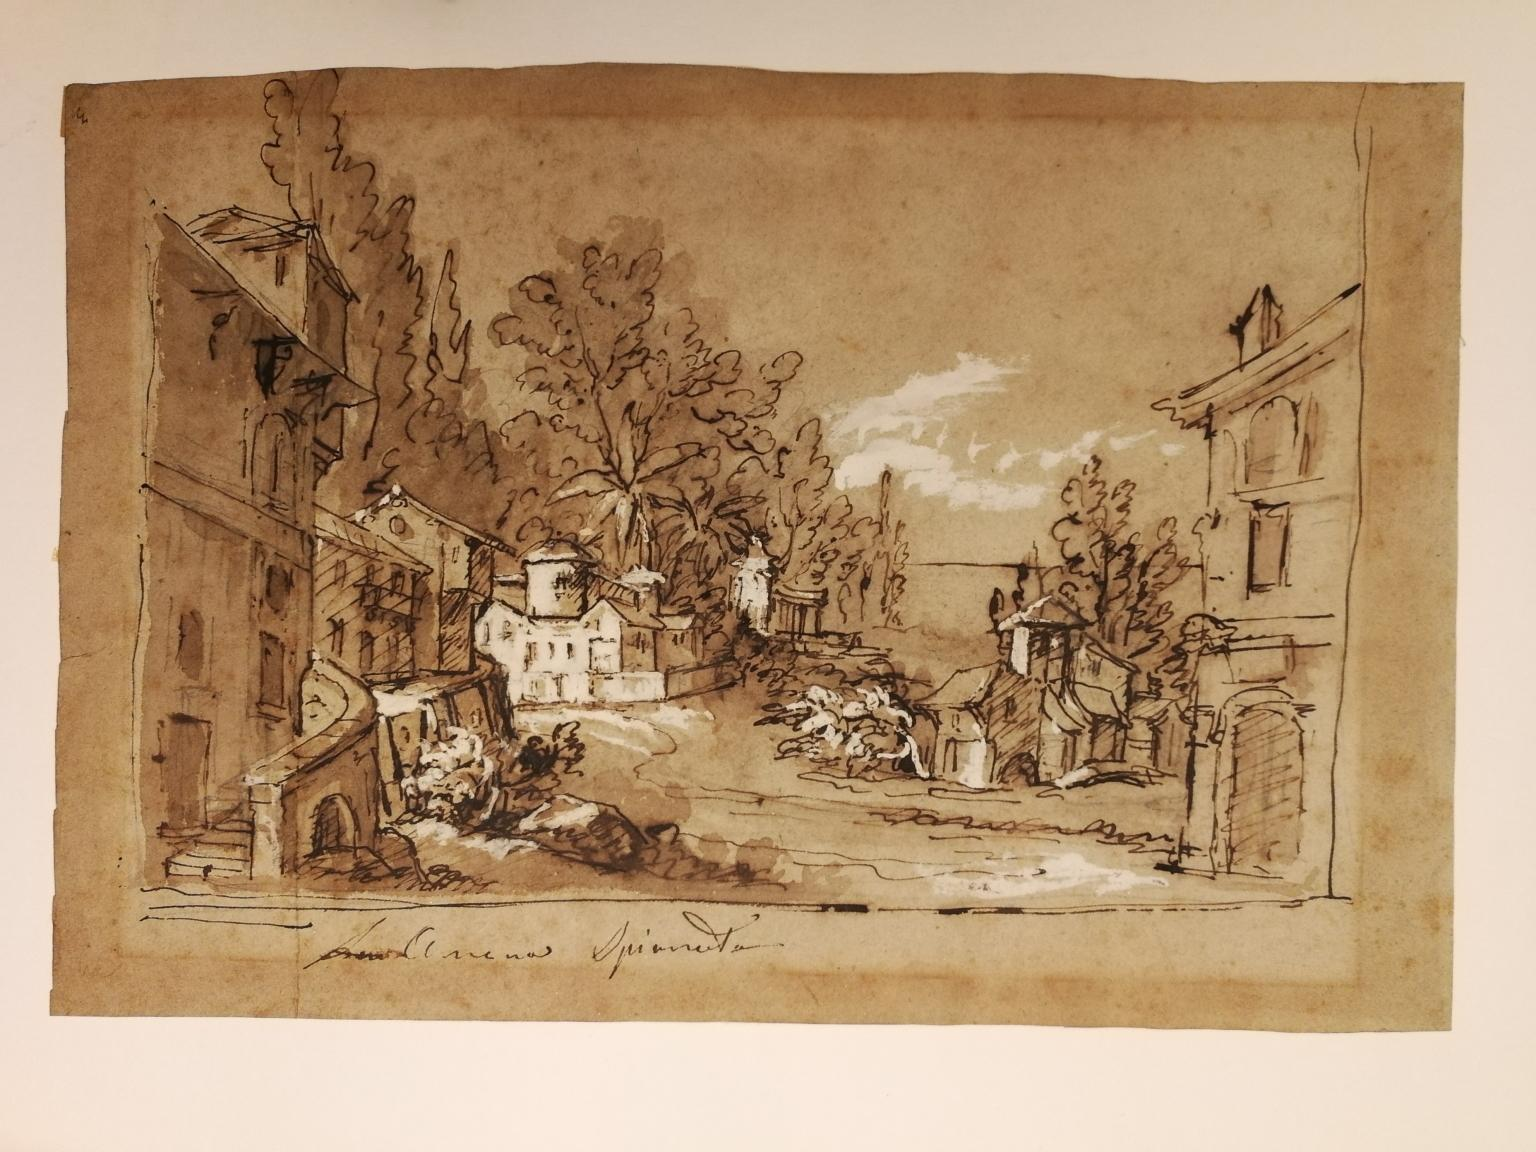 Veneto School, Landscape, end of 18th, ink wash and white lead on paper, signed